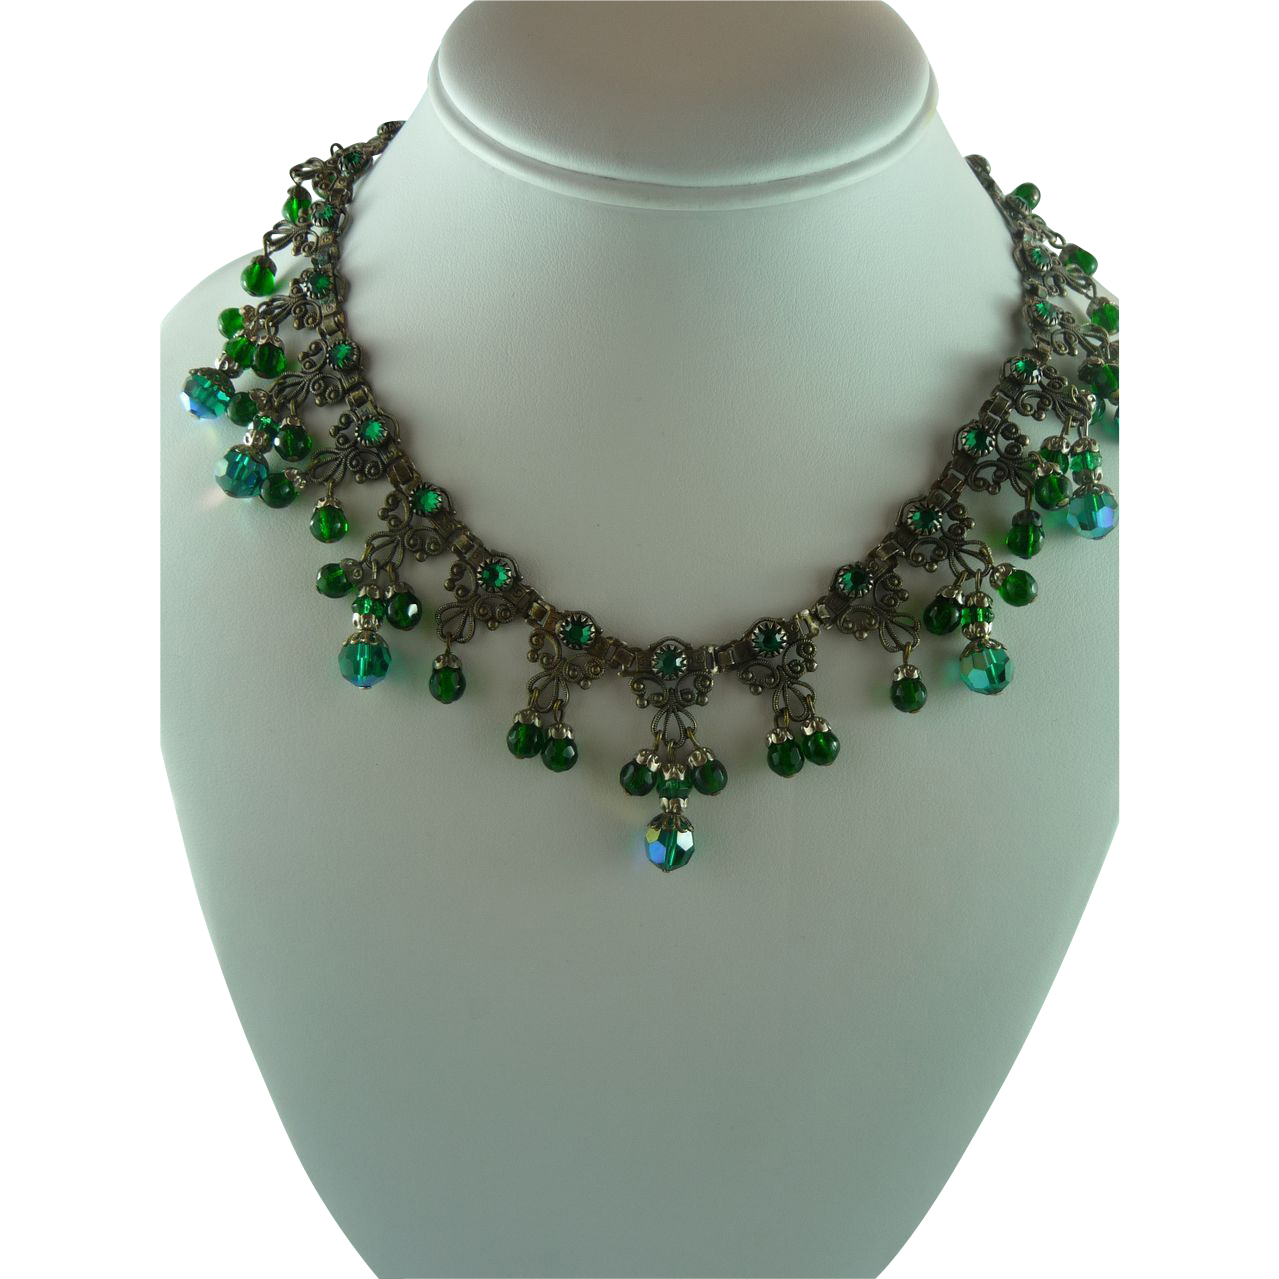 Exquisite Etruscan Revival Necklace